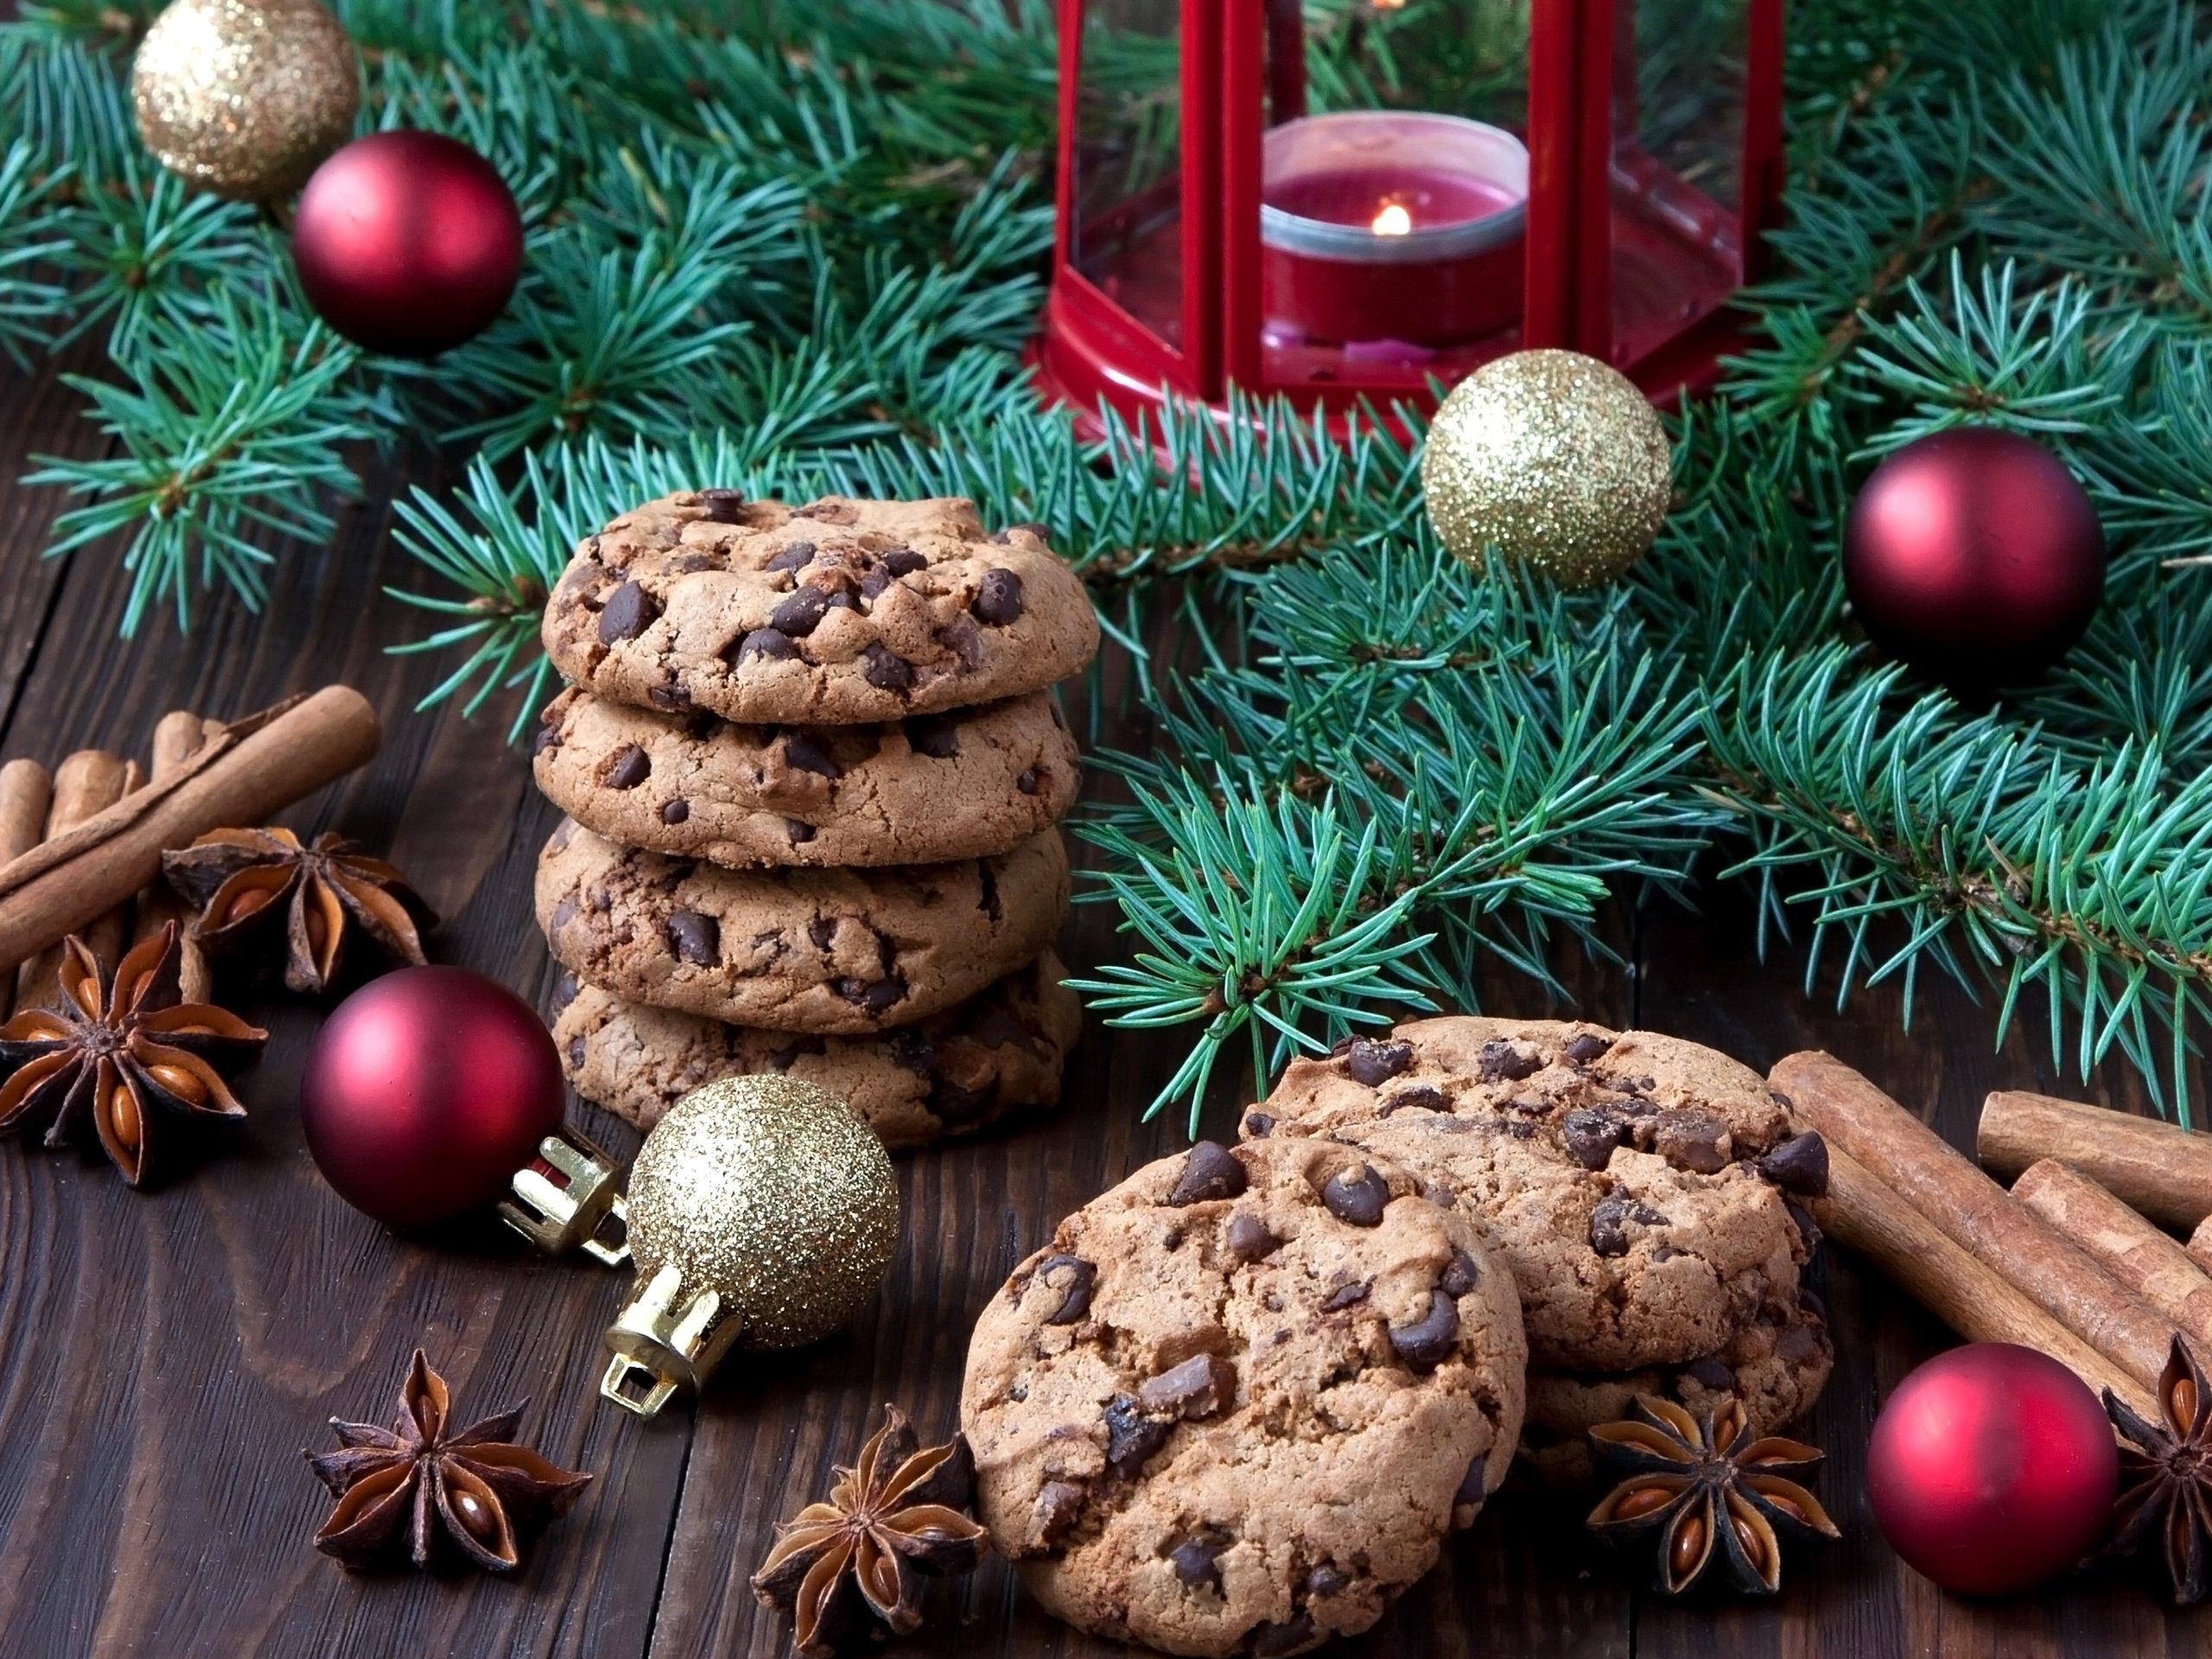 Wallpaper Christmas food, chocolate cookies, tree branches, balls, candle  2560x1920 HD Picture, Image